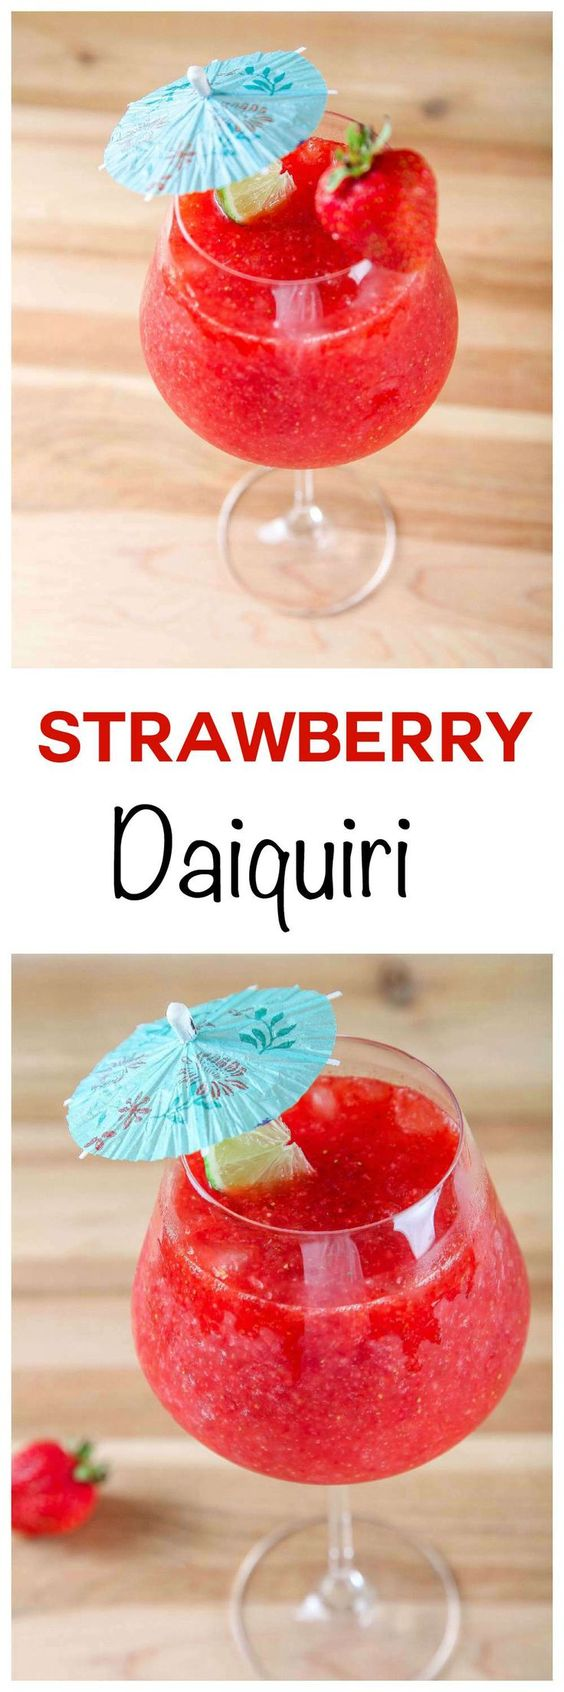 Easy Strawberry Daiquiri: Frosty, sweet, and refreshing cocktail that couldn't be easier to make. Requires only THREE common ingredients and tastes like an adult slushie!